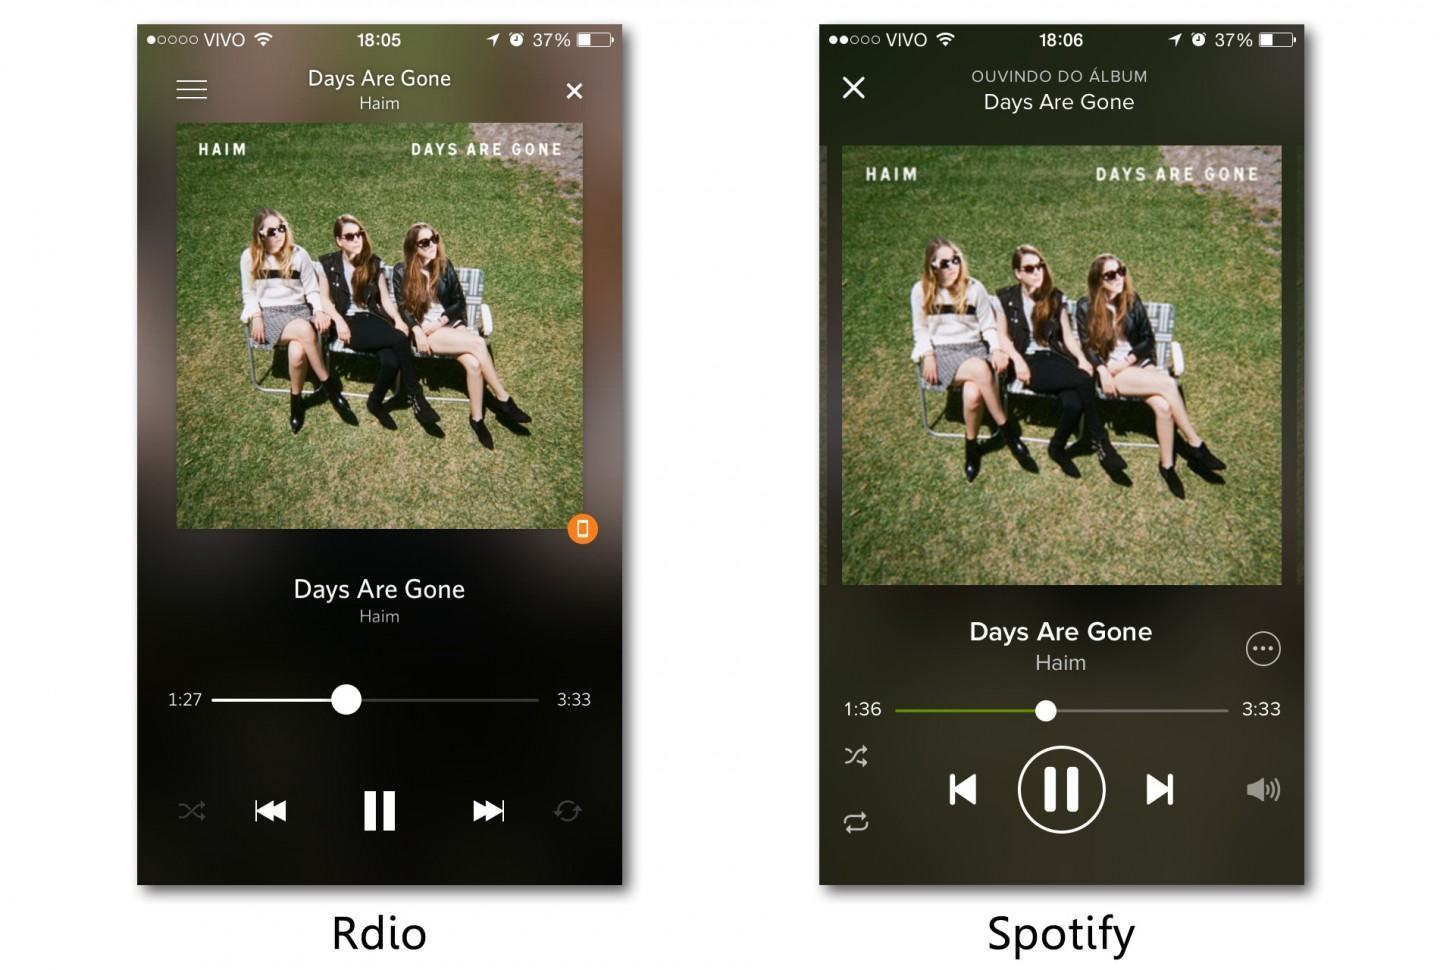 Screenshots do Rdio e Spotify, tocando HAIM, no iPhone.